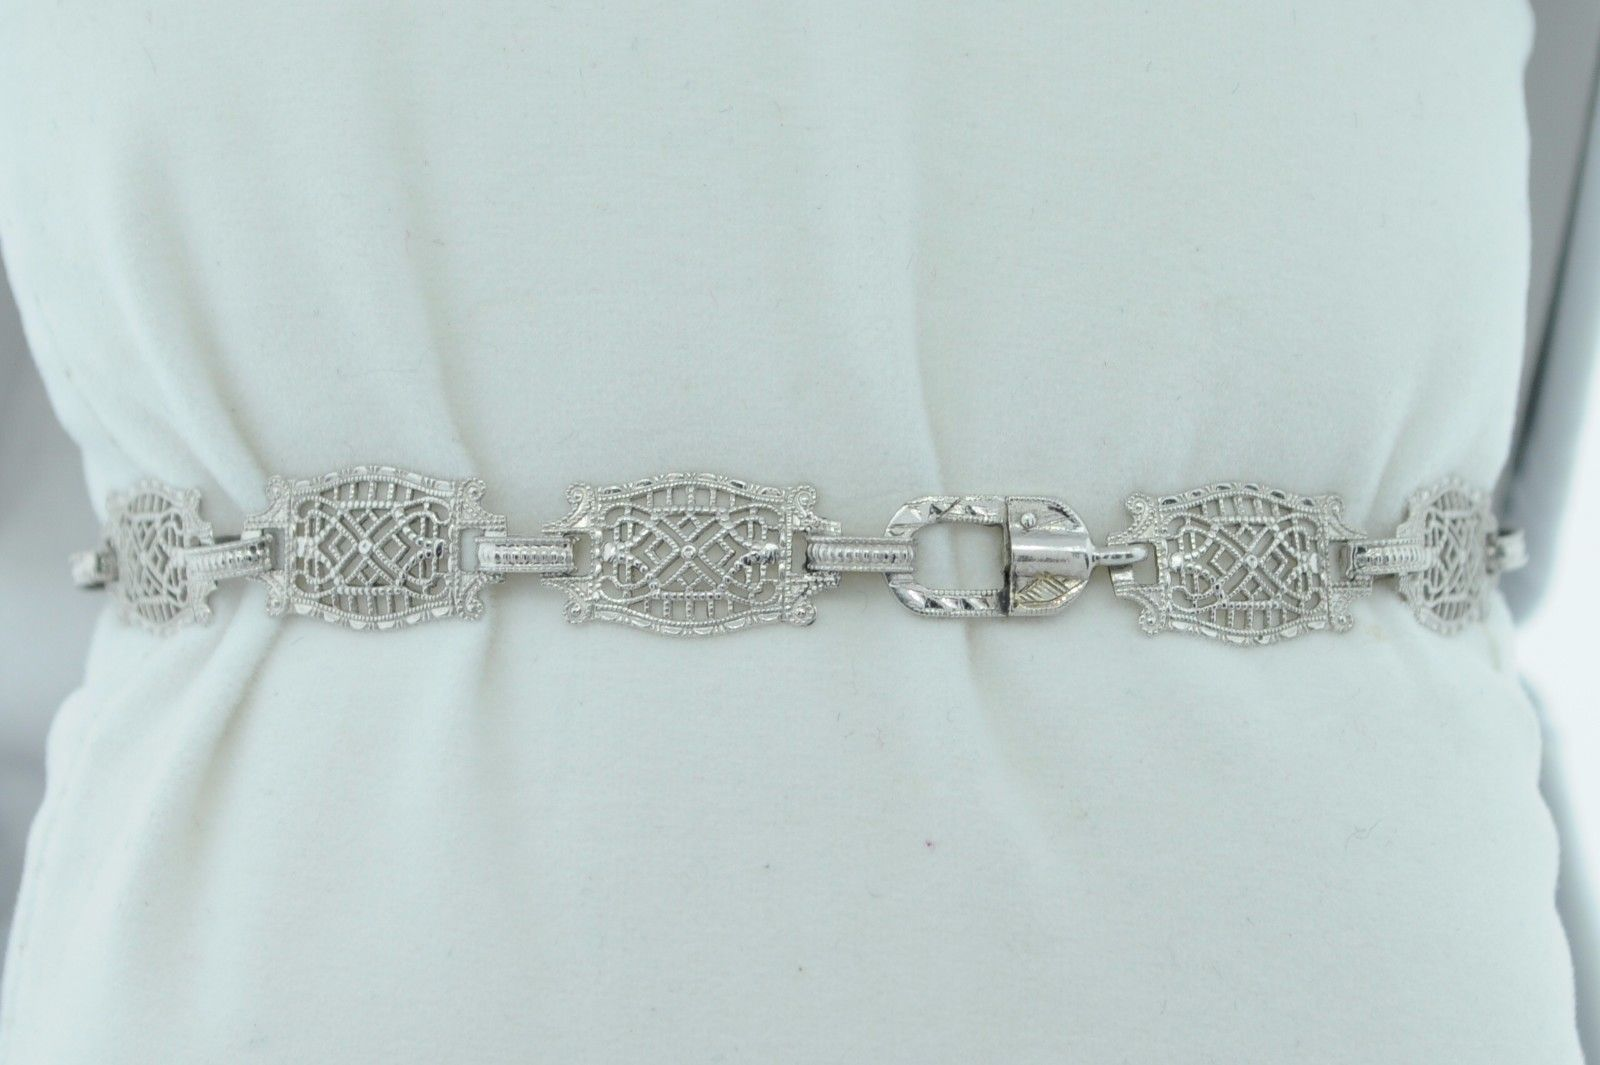 "Art Deco (ca. 1930) 10K White Gold Diamond & Etched Glass Bracelet (6 3/4"") image 7"